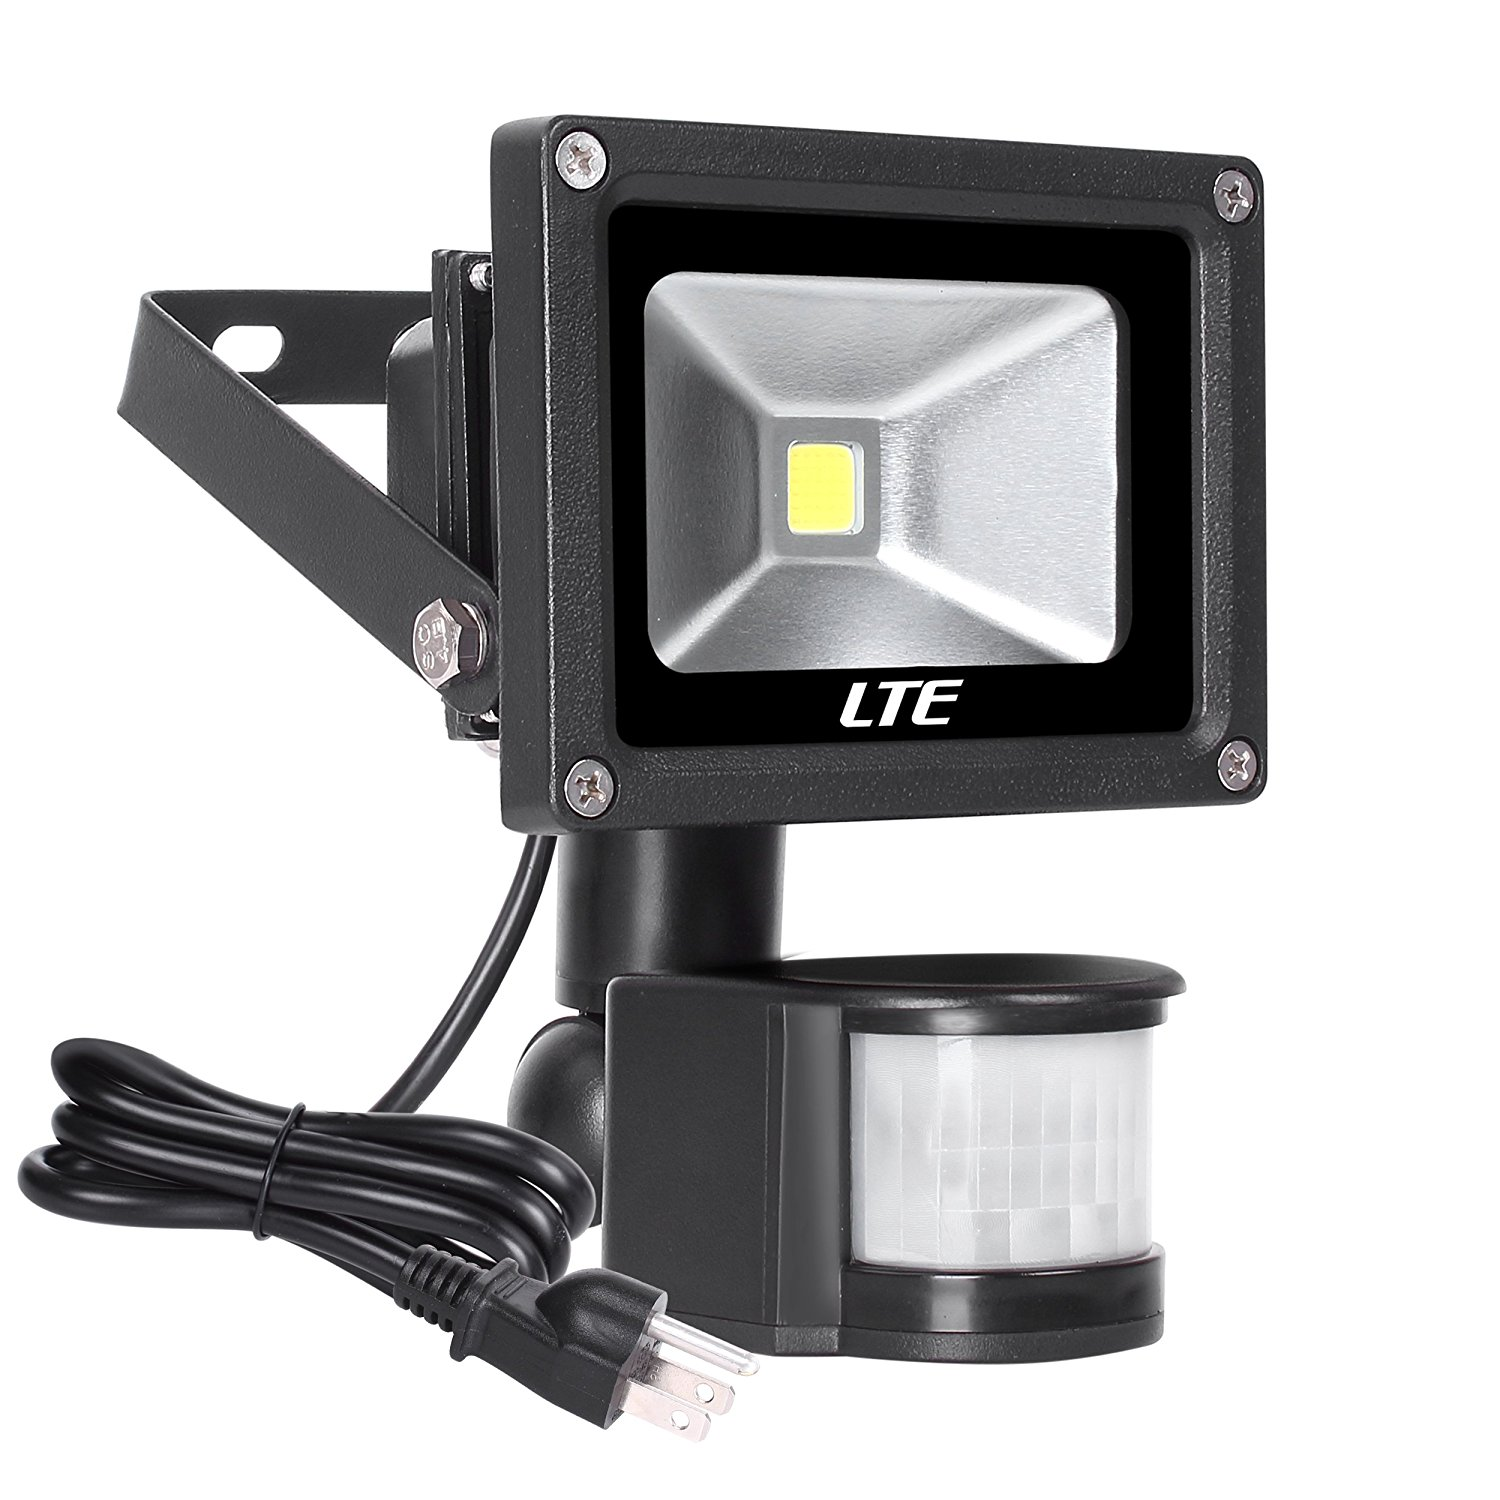 Motion Sensor Flood Light, LTE Waterproof Outdoor Security LED 10W 760LM Daylight White with PIR for Home Garden Garage Etc ultrathin led flood light 200w ac85 265v waterproof ip65 floodlight spotlight outdoor lighting free shipping